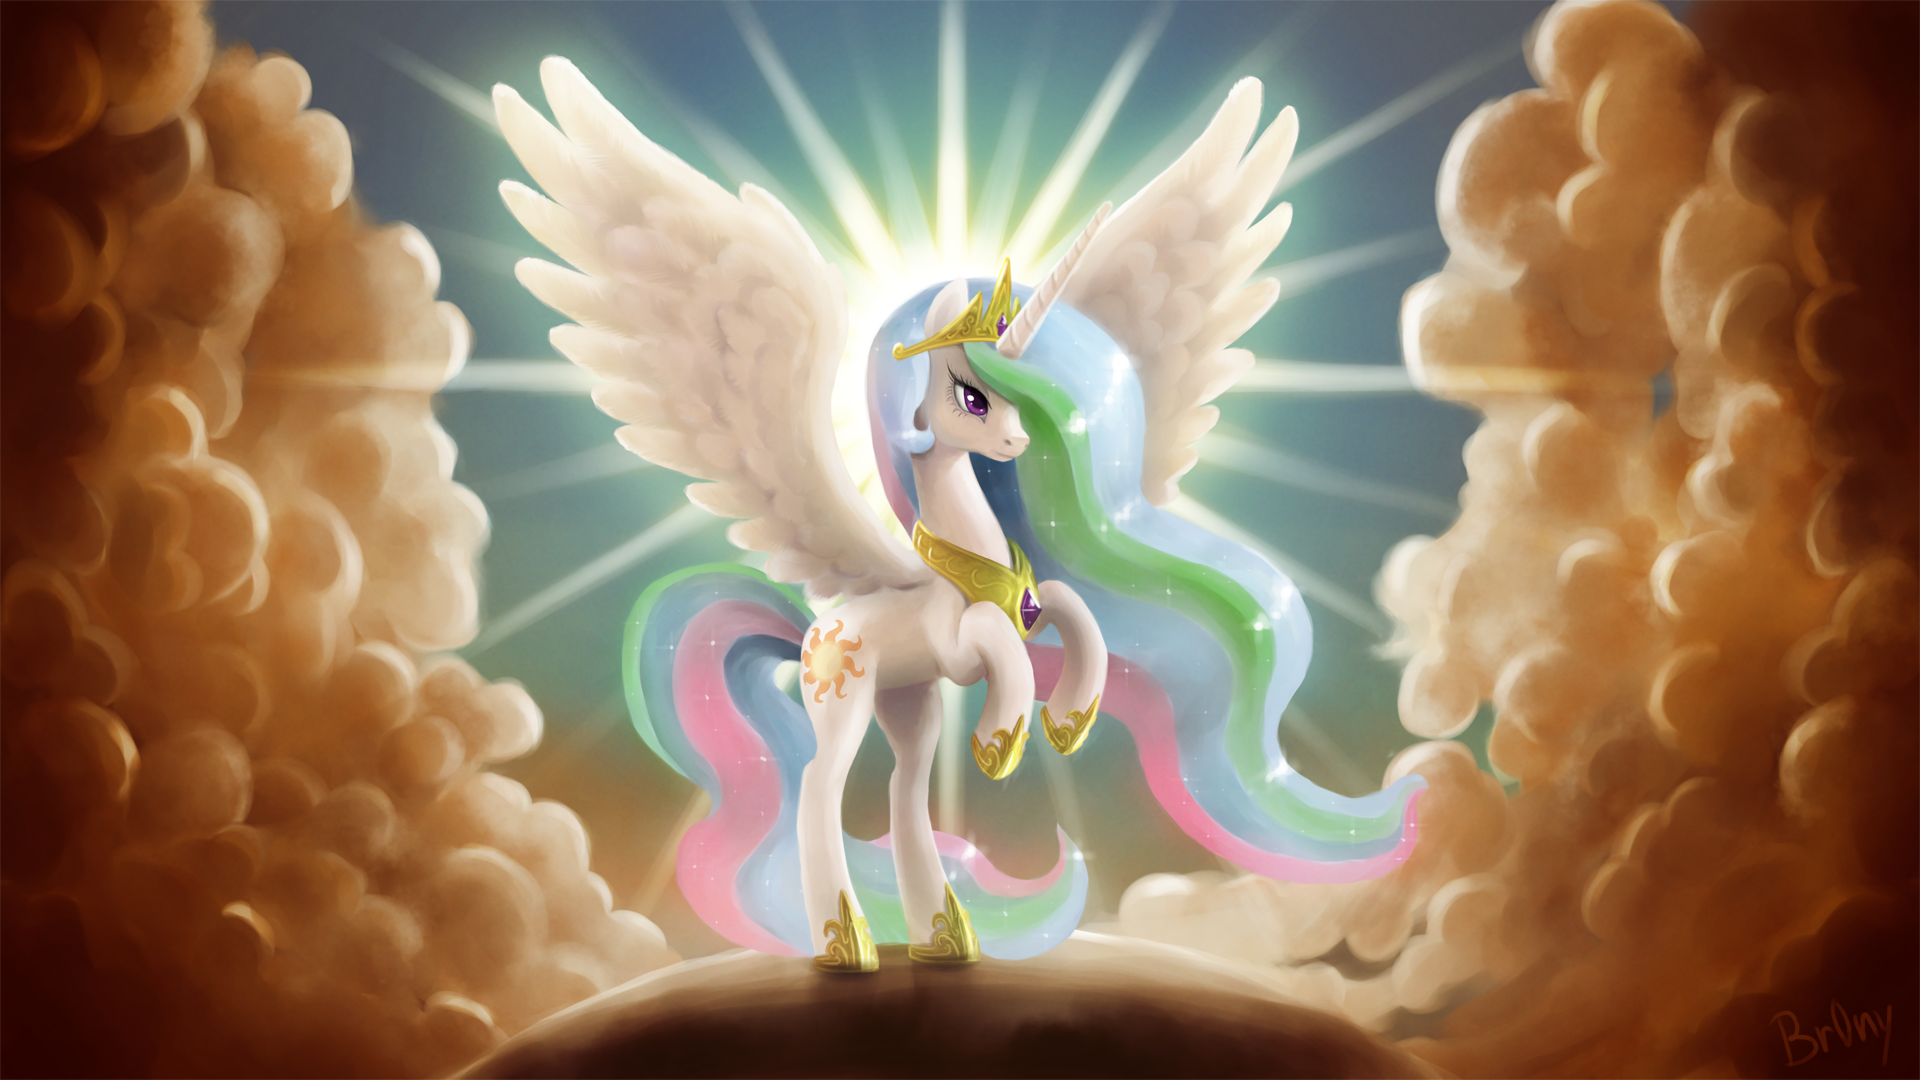 celestia_by_br0ny-d4ig9gg.png